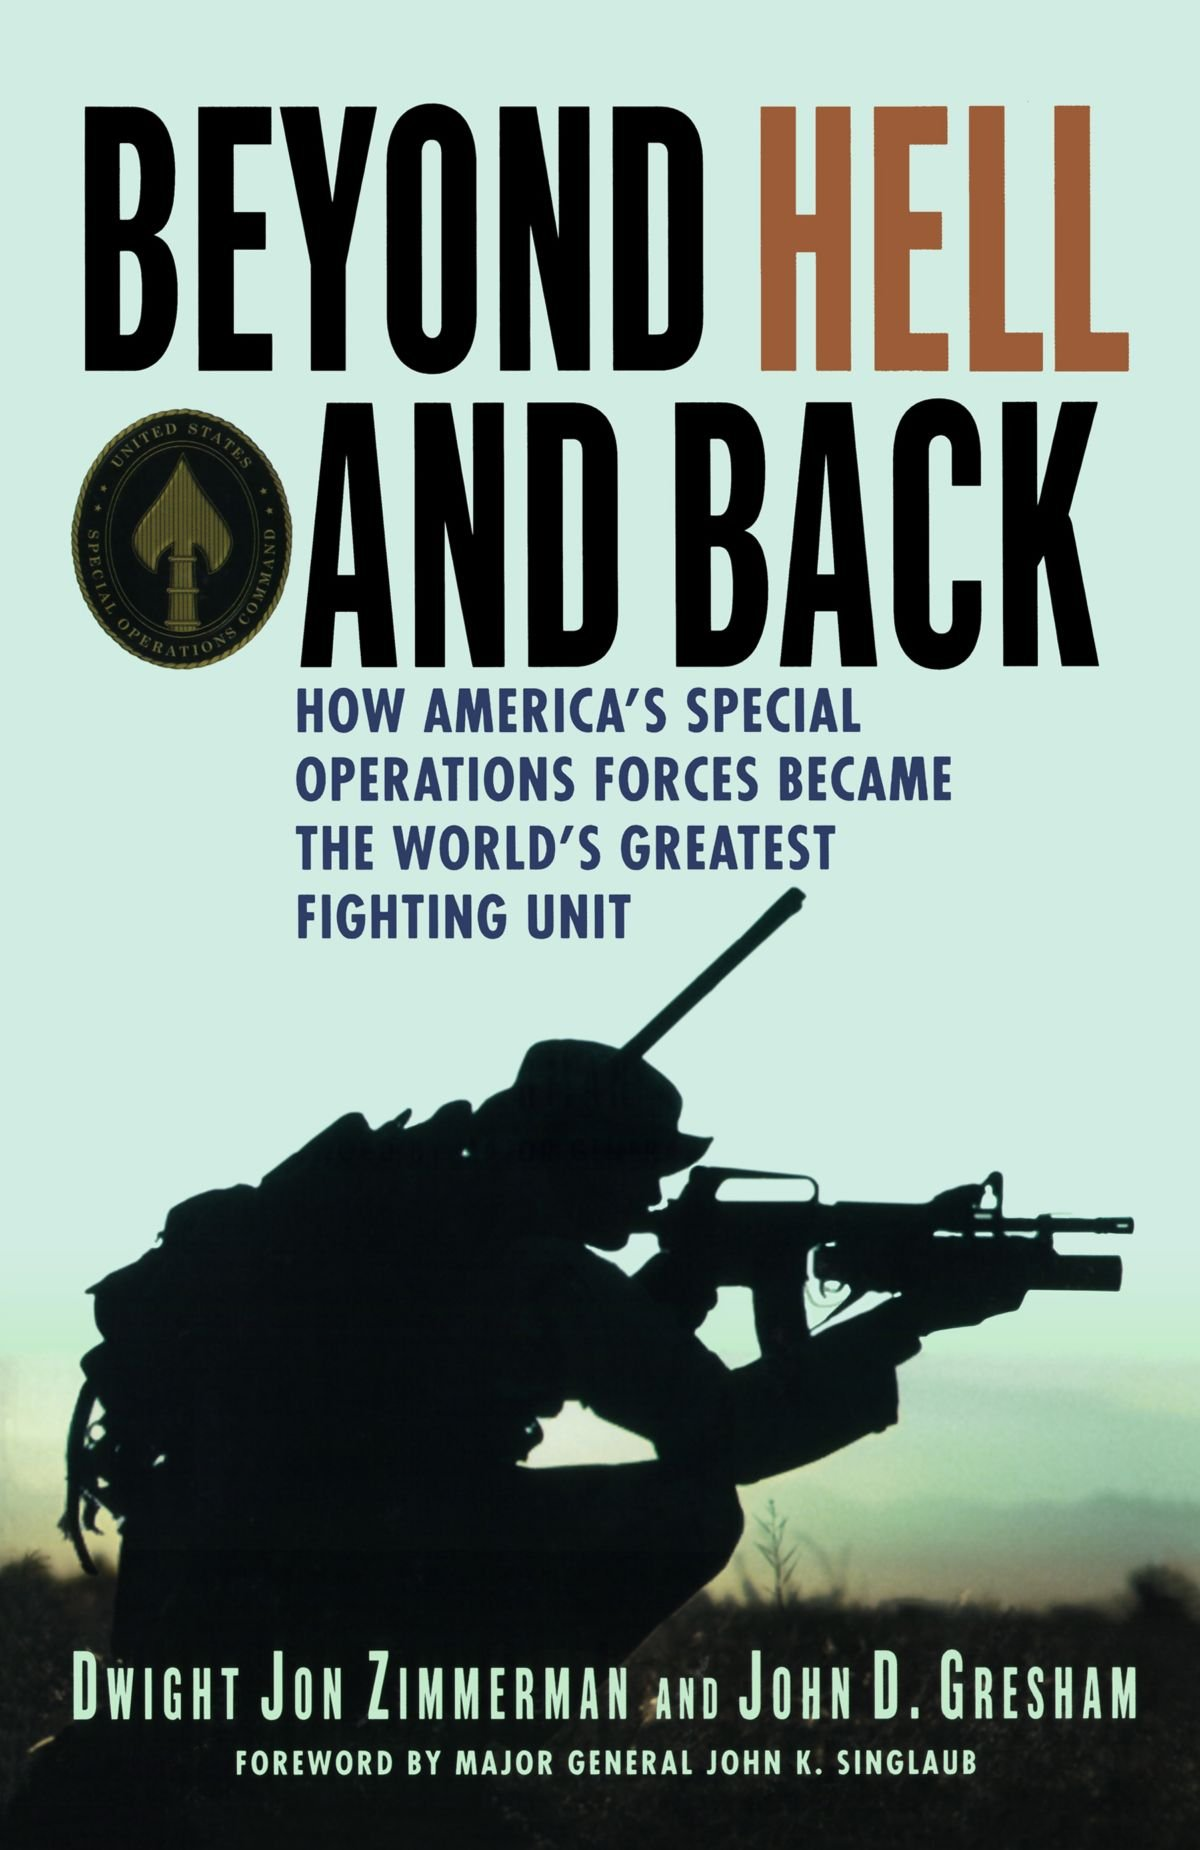 Beyond Hell and Back: How America's Special Operations Forces Became the World's Greatest Fighting Unit by St. Martin's Griffin